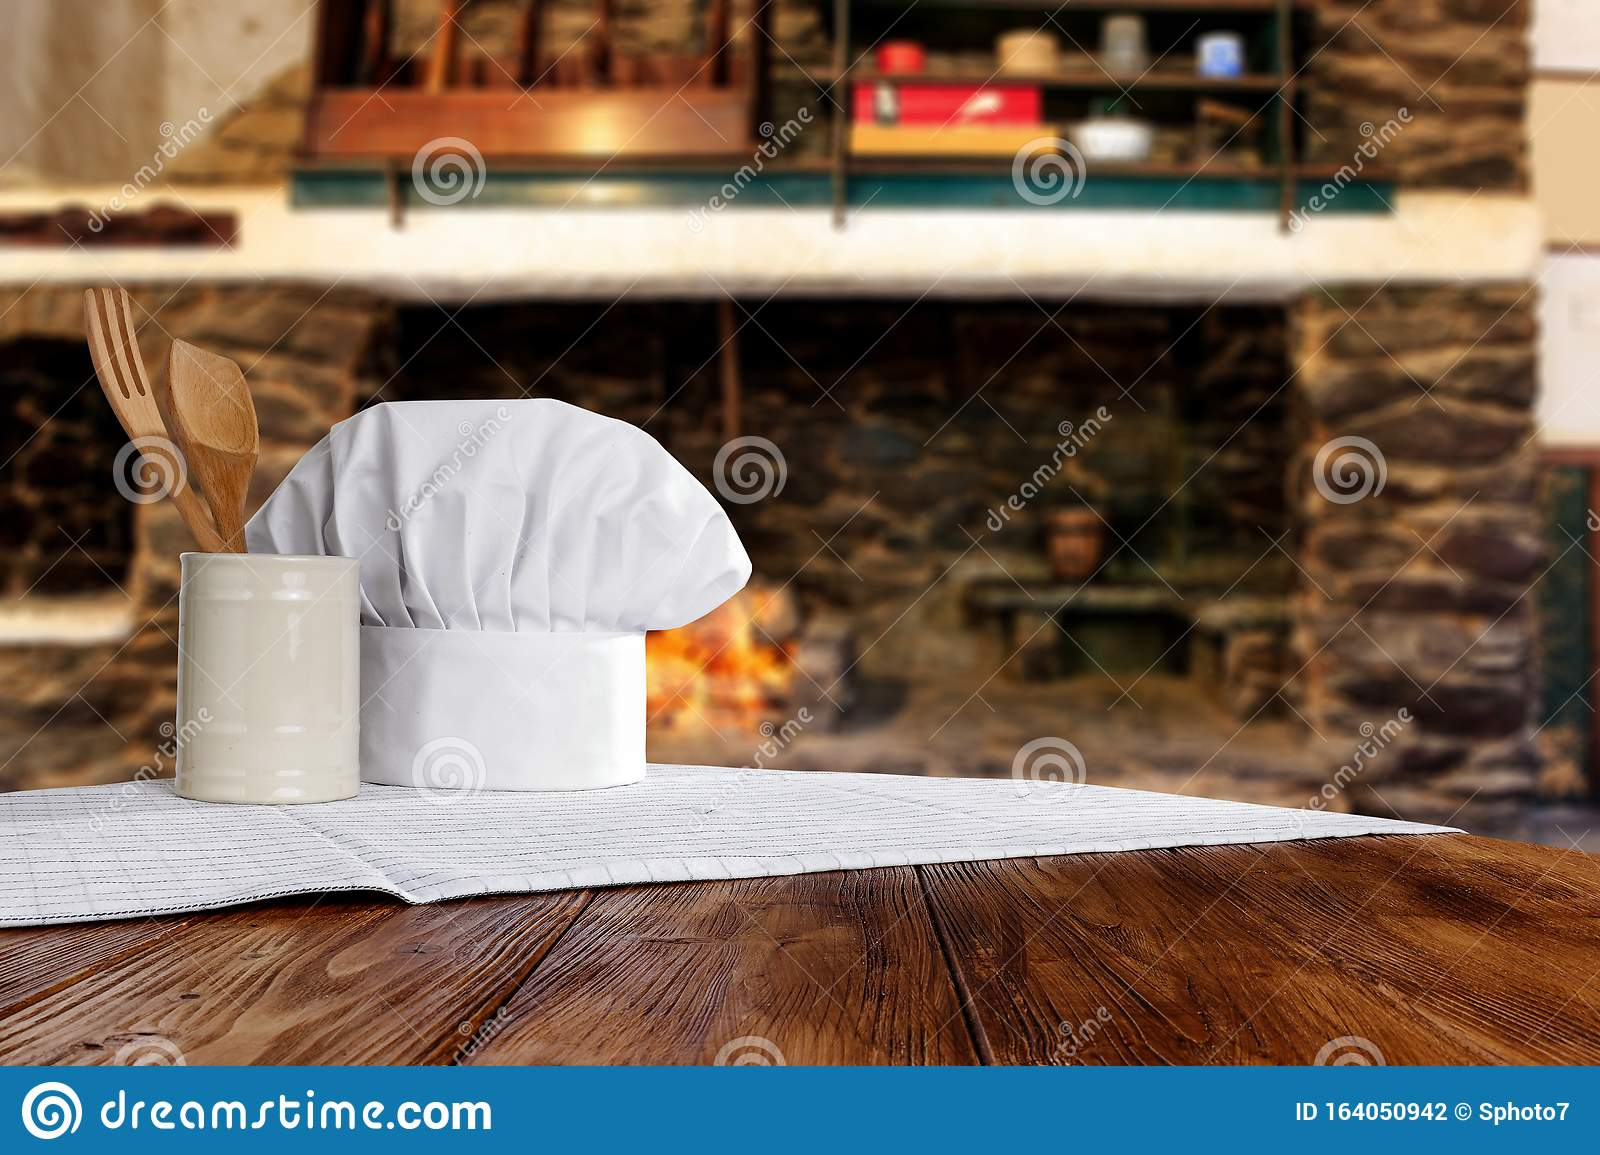 Kitchen Tools On Wooden Top With Cosy Warm Home Interior With Old Fireplace Wall Background Stock Photo Image Of Fire Heat 164050942